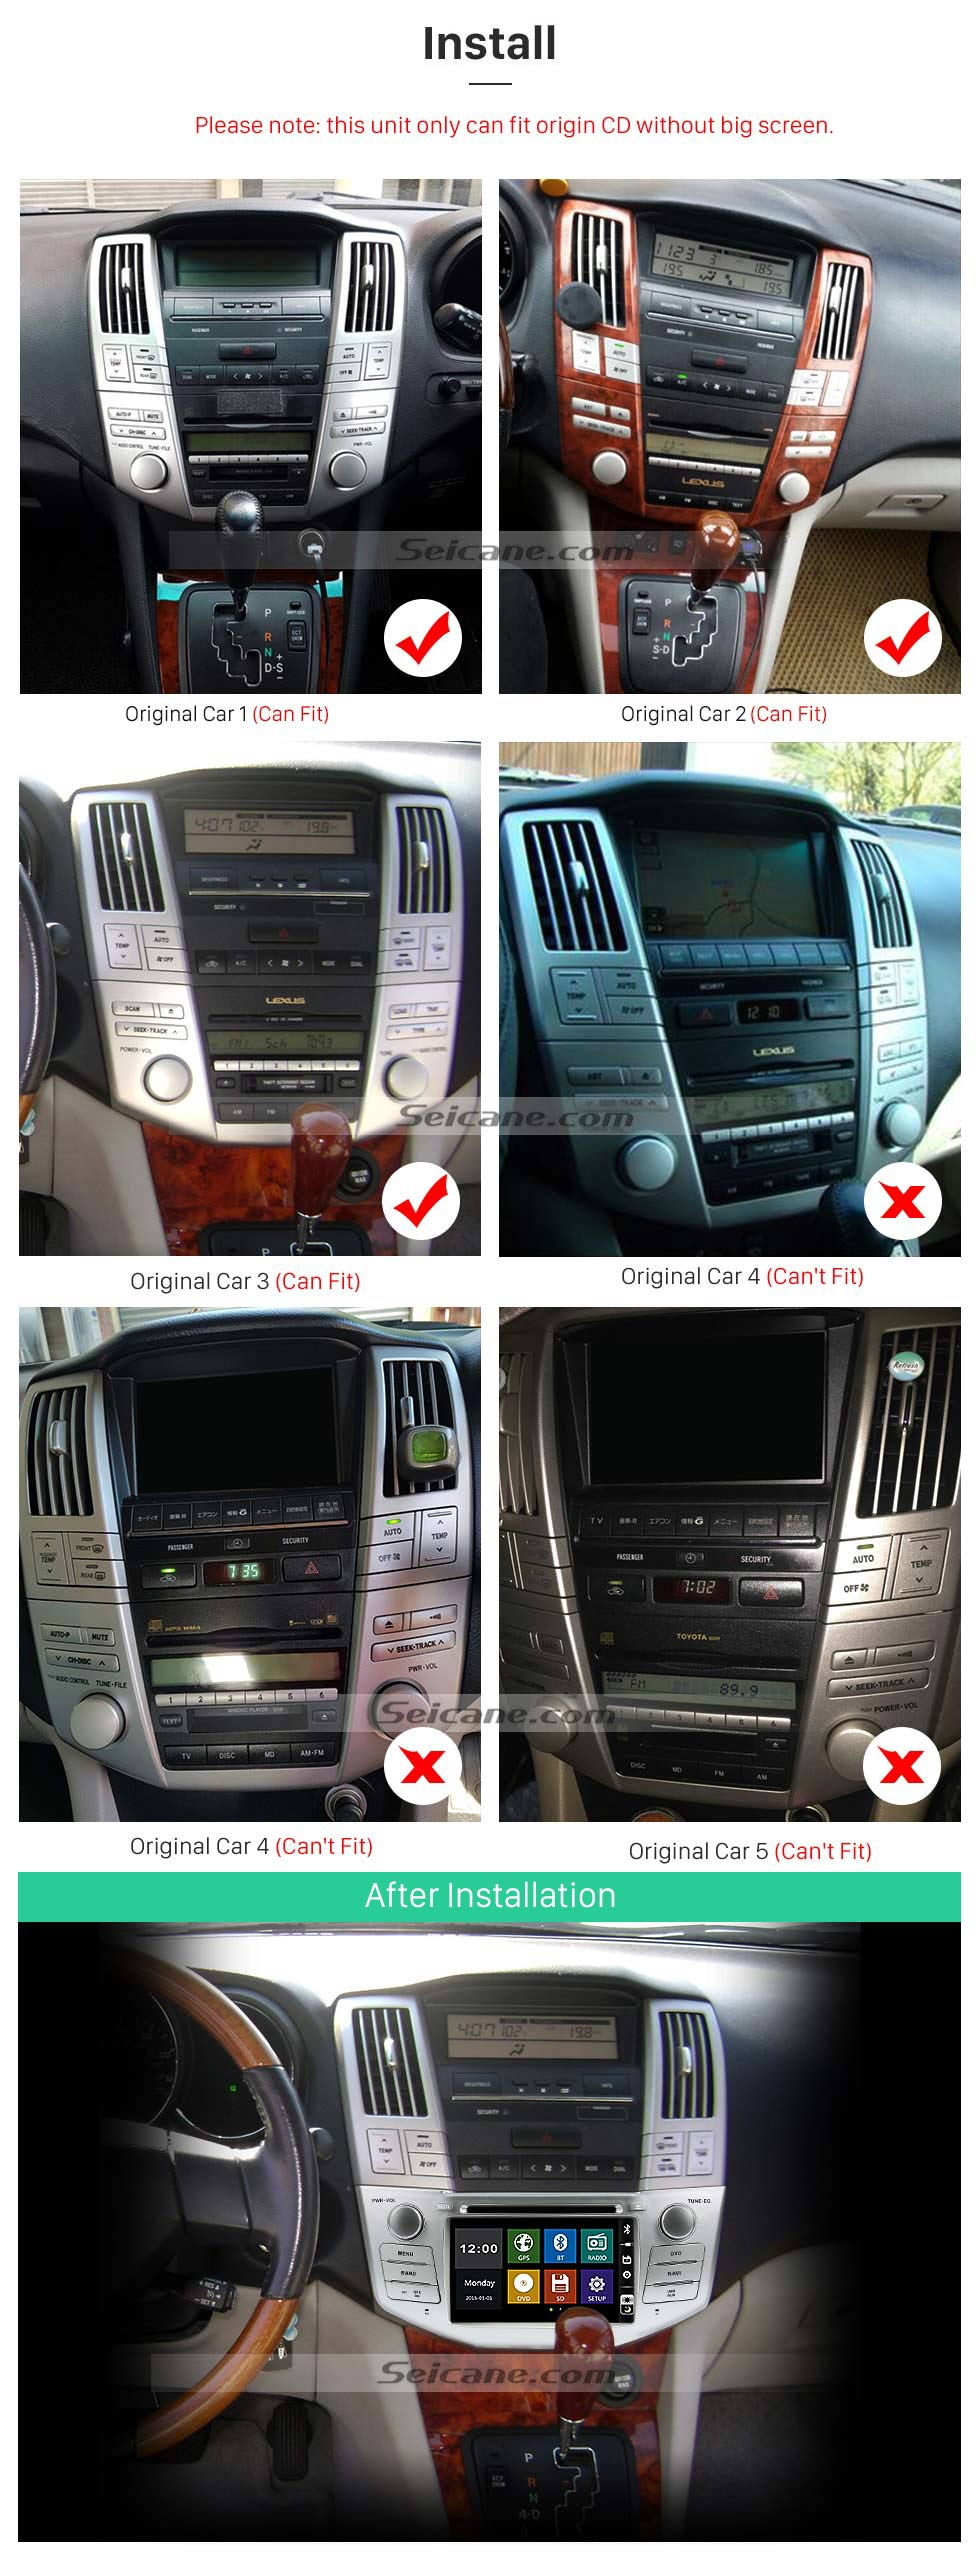 Install OEM 2004-2012 Toyota Harrier Bluetooth Music Radio DVD Player HD Touchscreen Car Stereo GPS Navigation System Steering Wheel Control 1080P